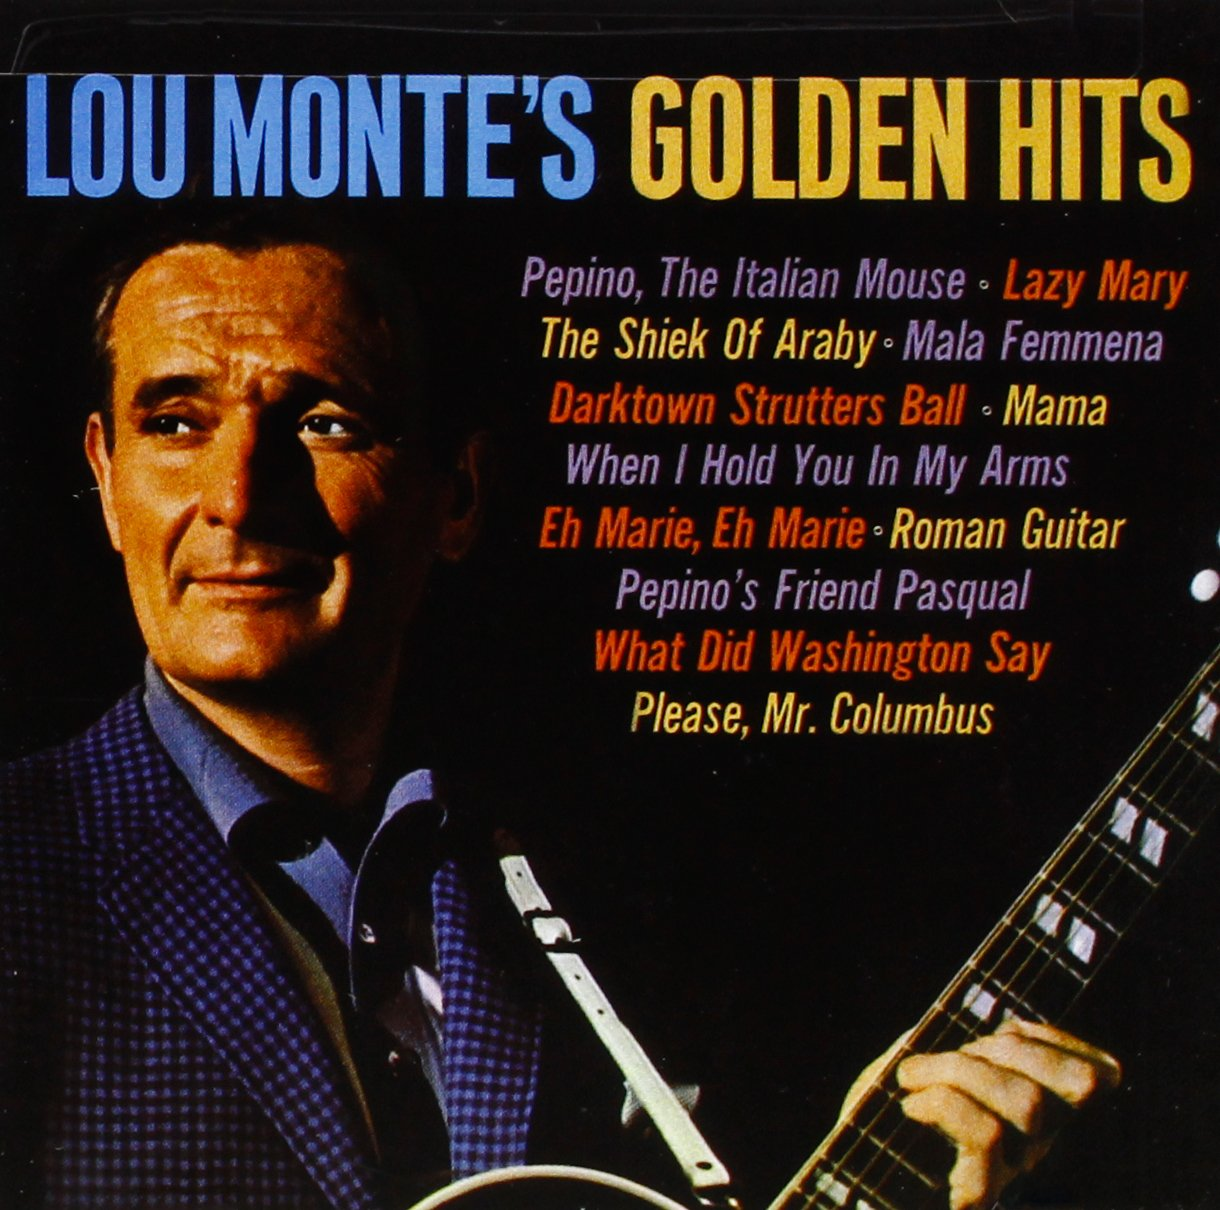 Golden Hits by Monte, Lou